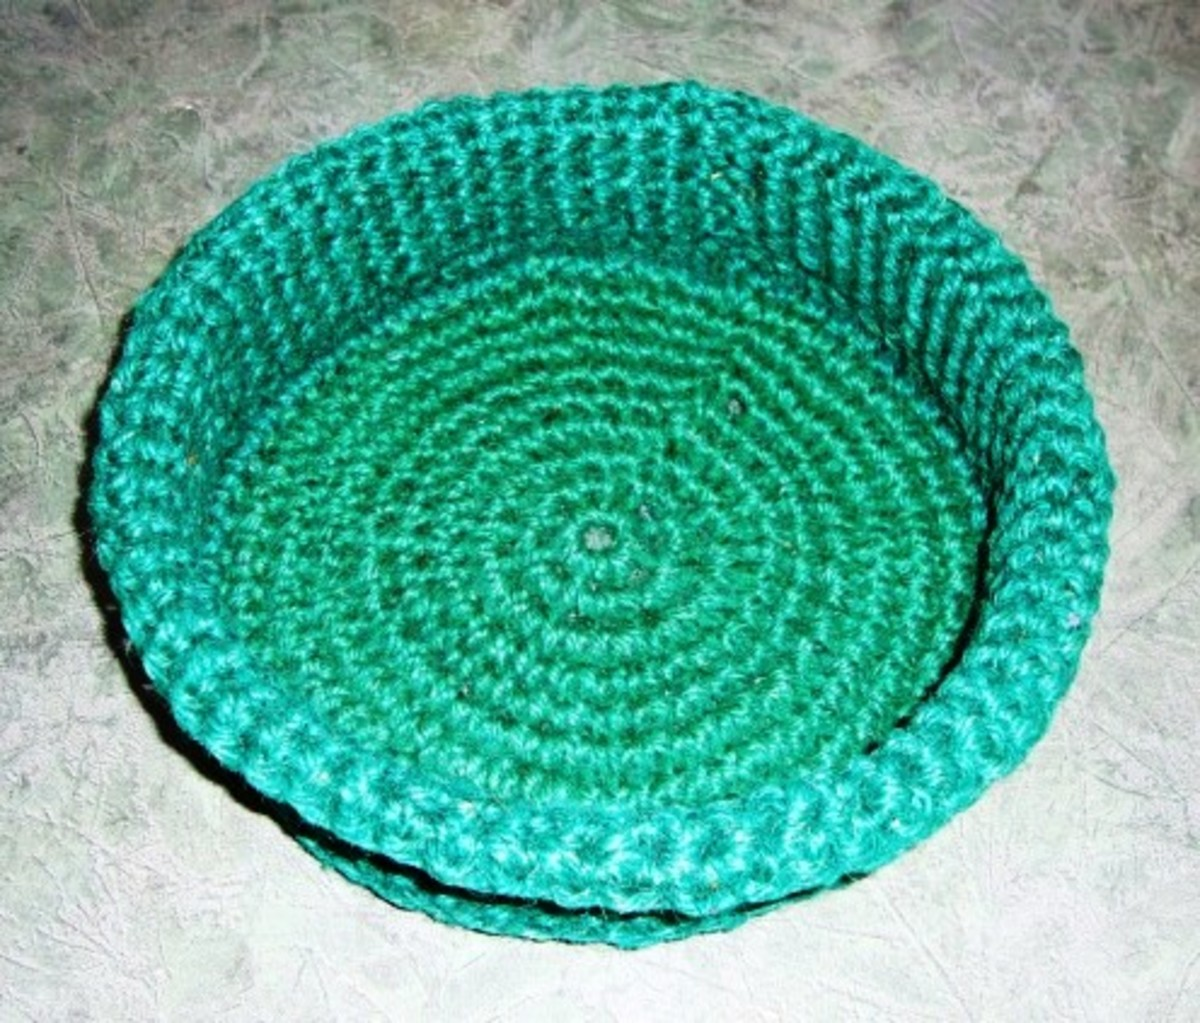 How to Crochet a Round Basket From Gardening Twine